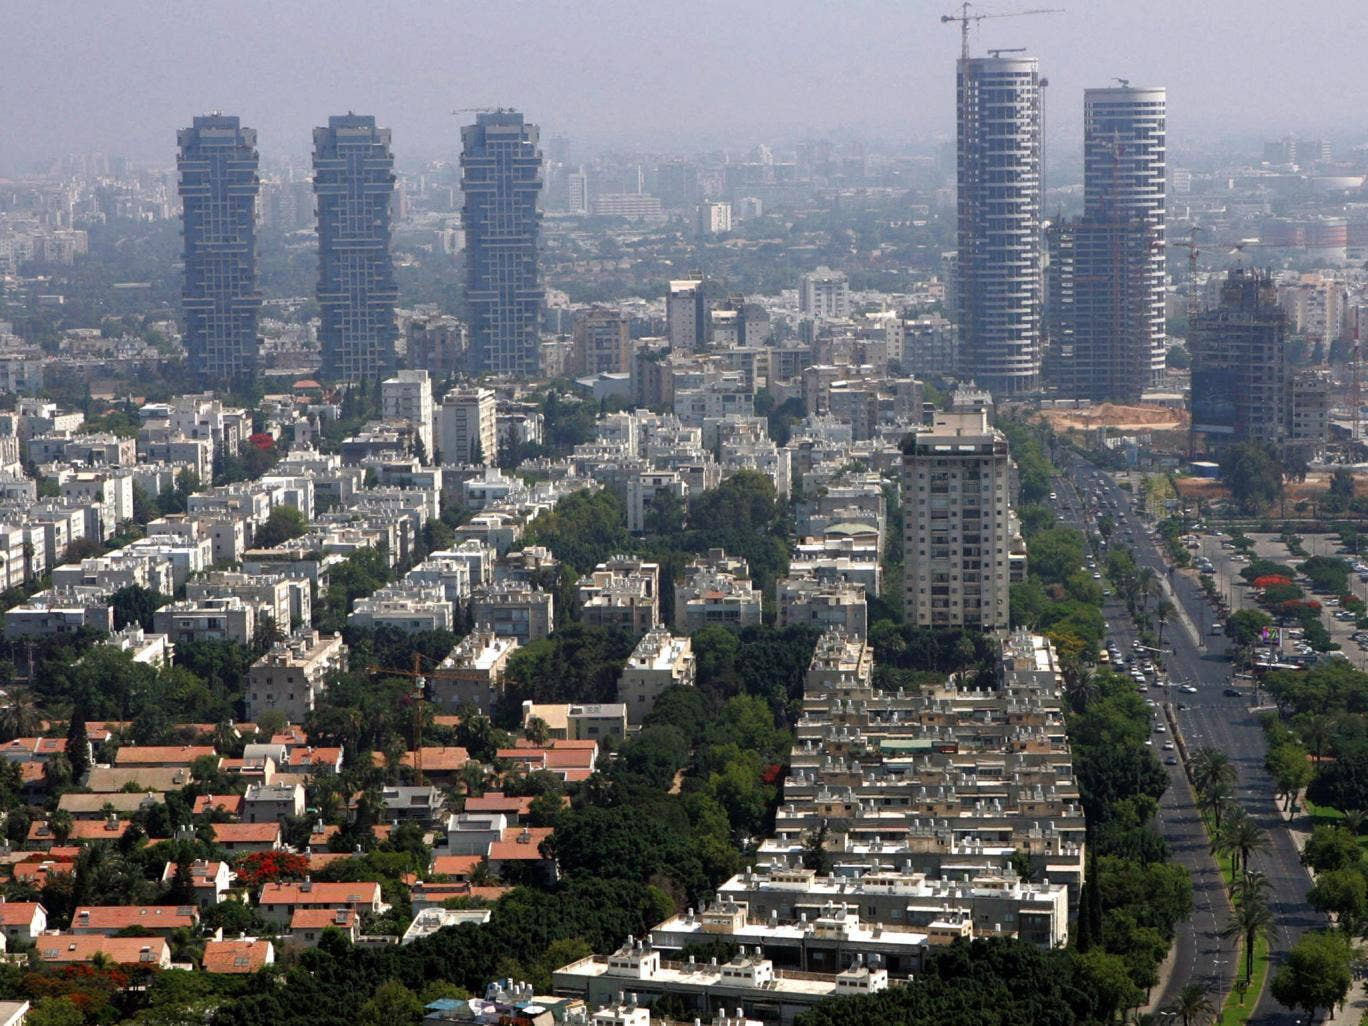 Tel Aviv: Soon to be home to the mysterious 'Site 911'